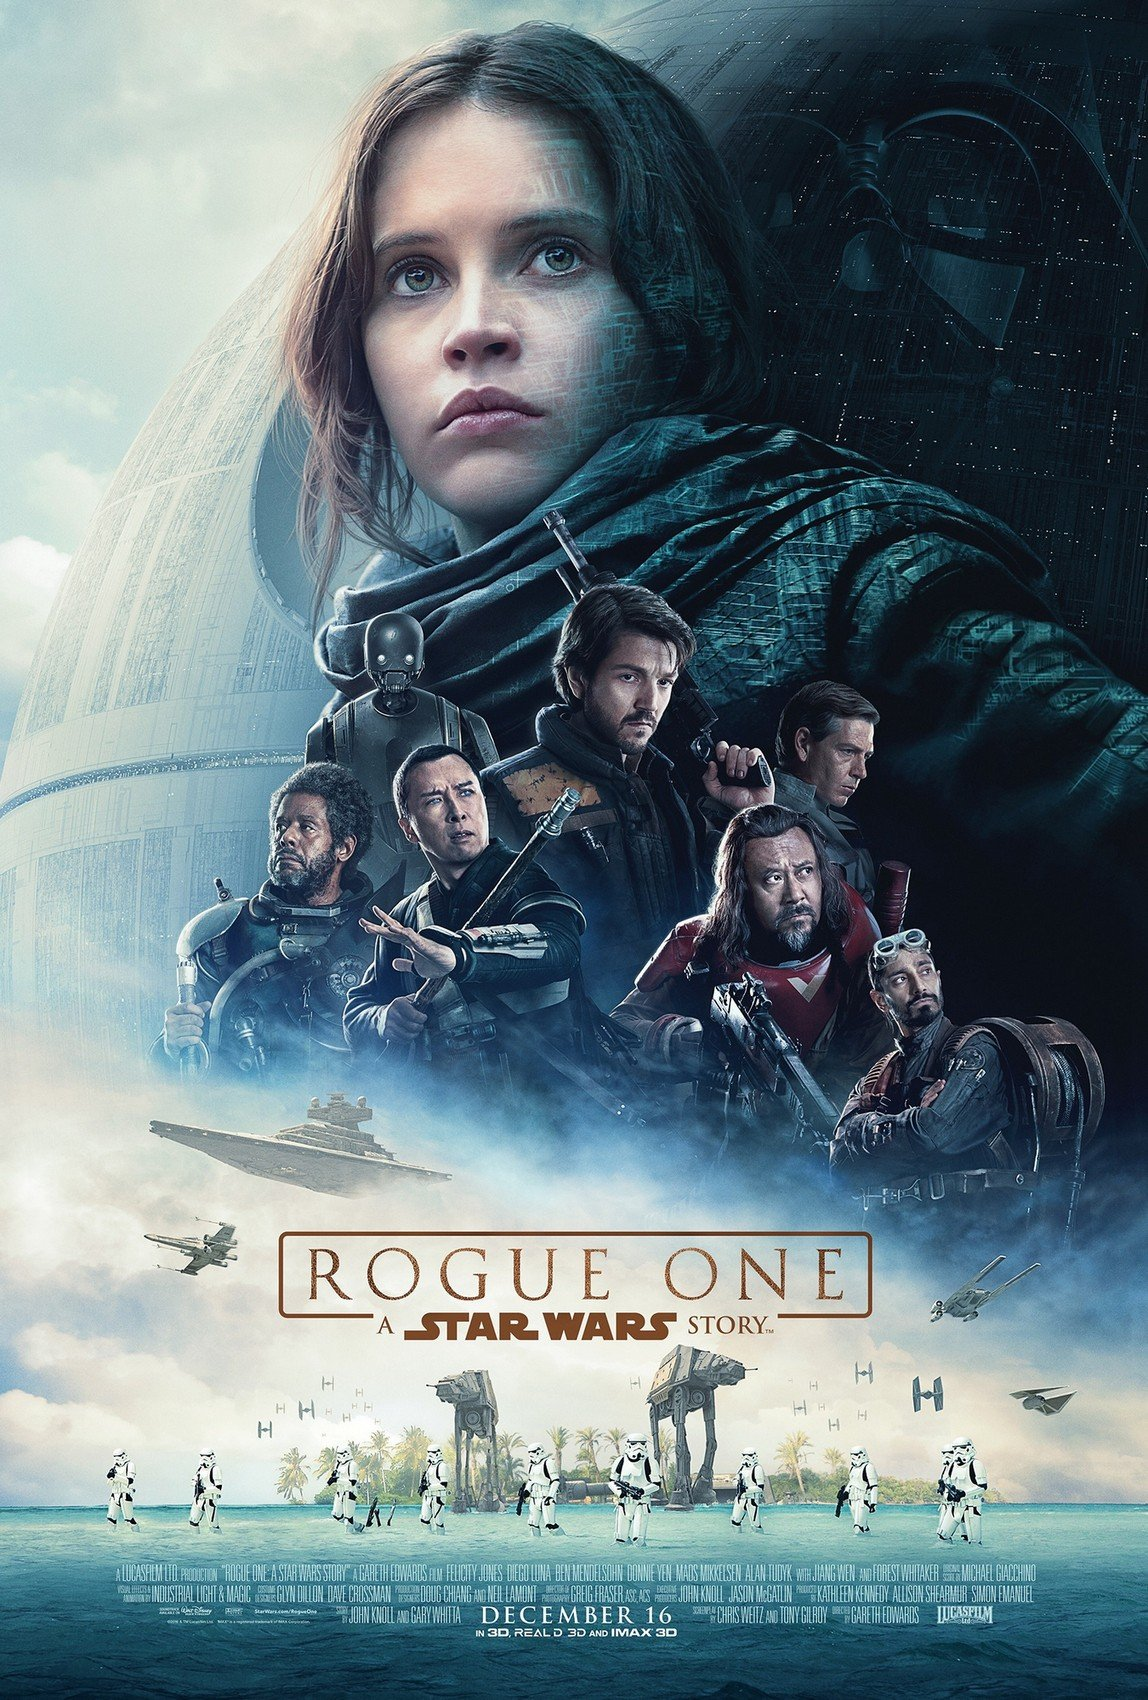 Rogue One: A Star Wars Story 侠盗一号:星球大战外传